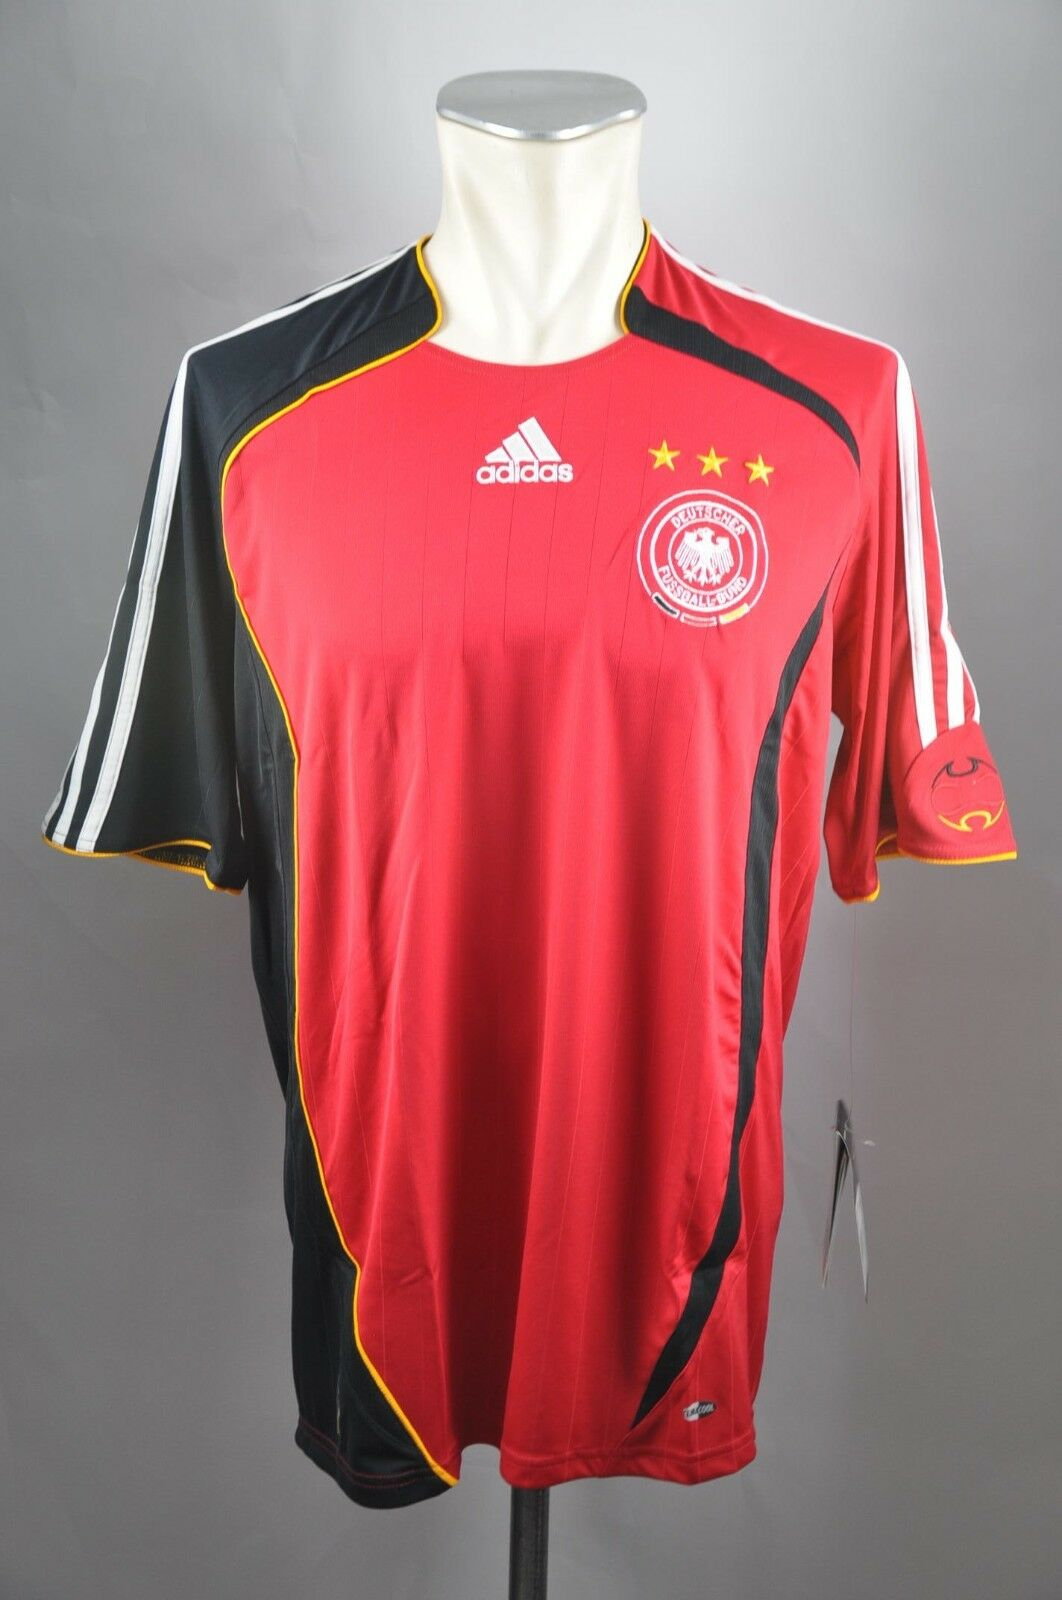 M Gr. Trikot Adidas Deutschland First Quality | Germany Away